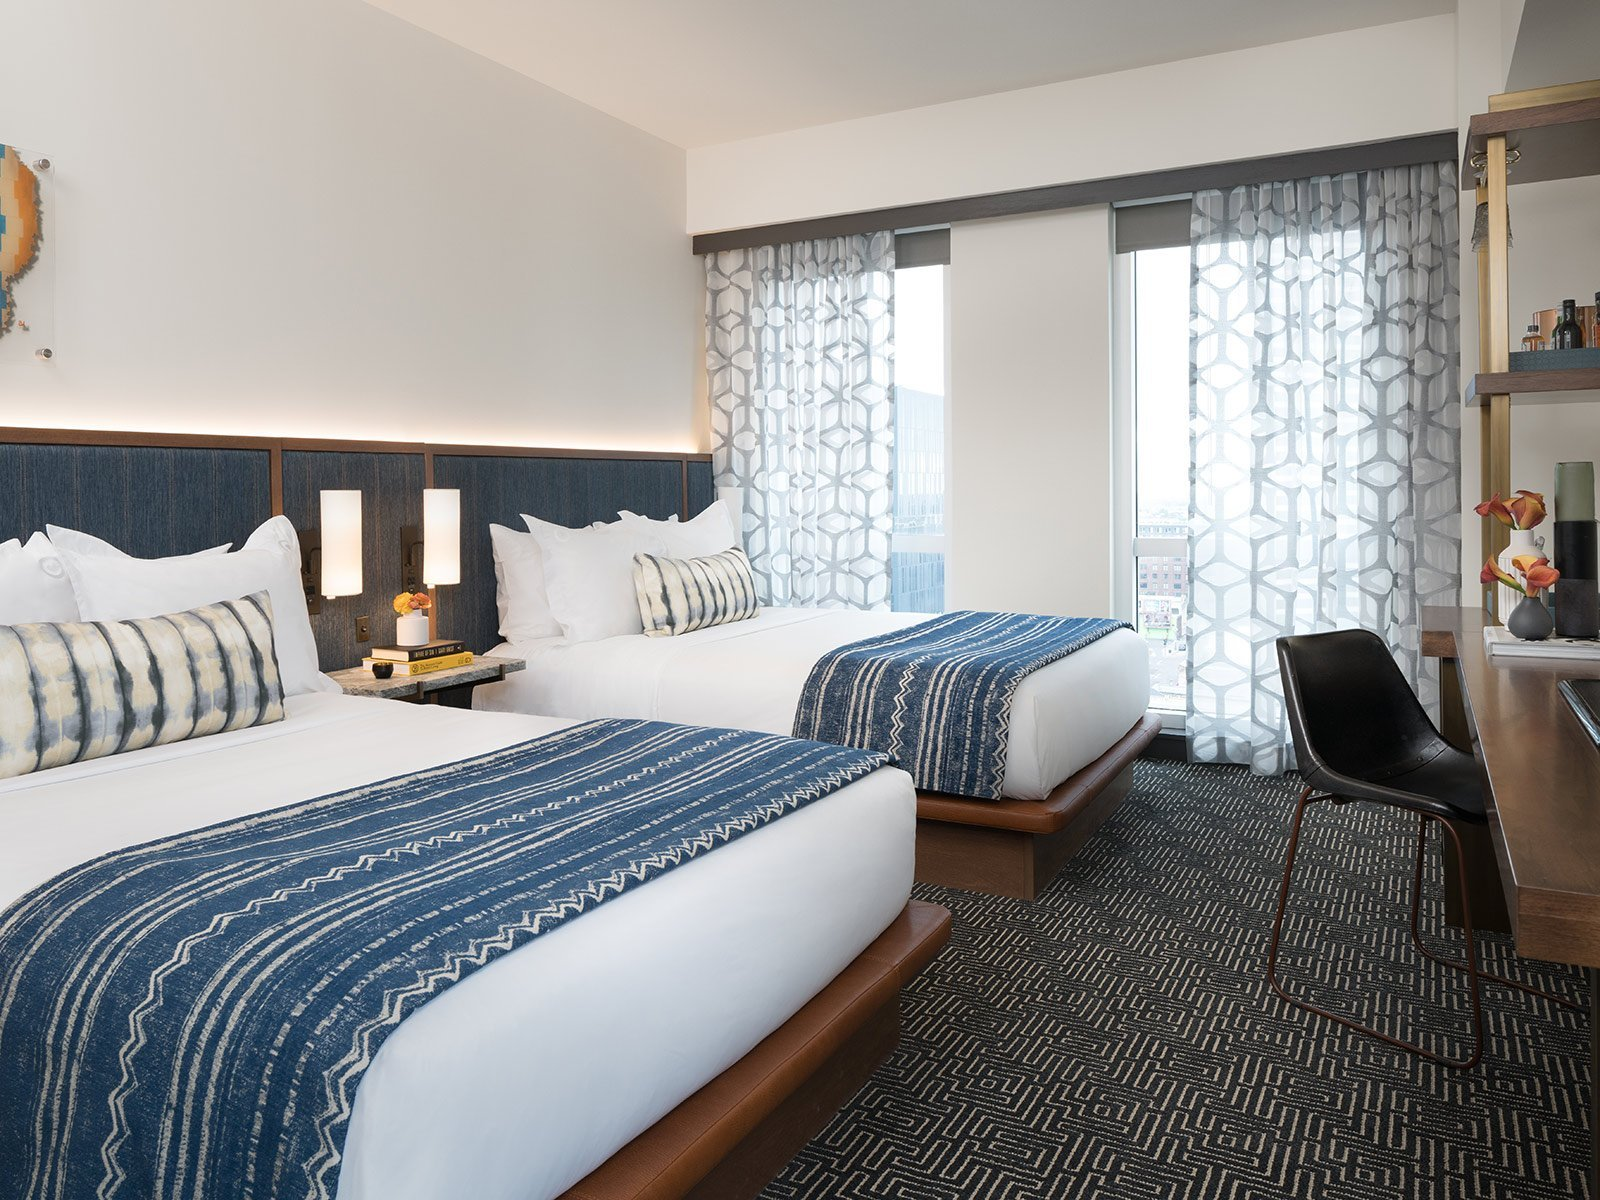 2 queen beds troubie room the troubadour hotel new - Queen bed ideas for small room ...